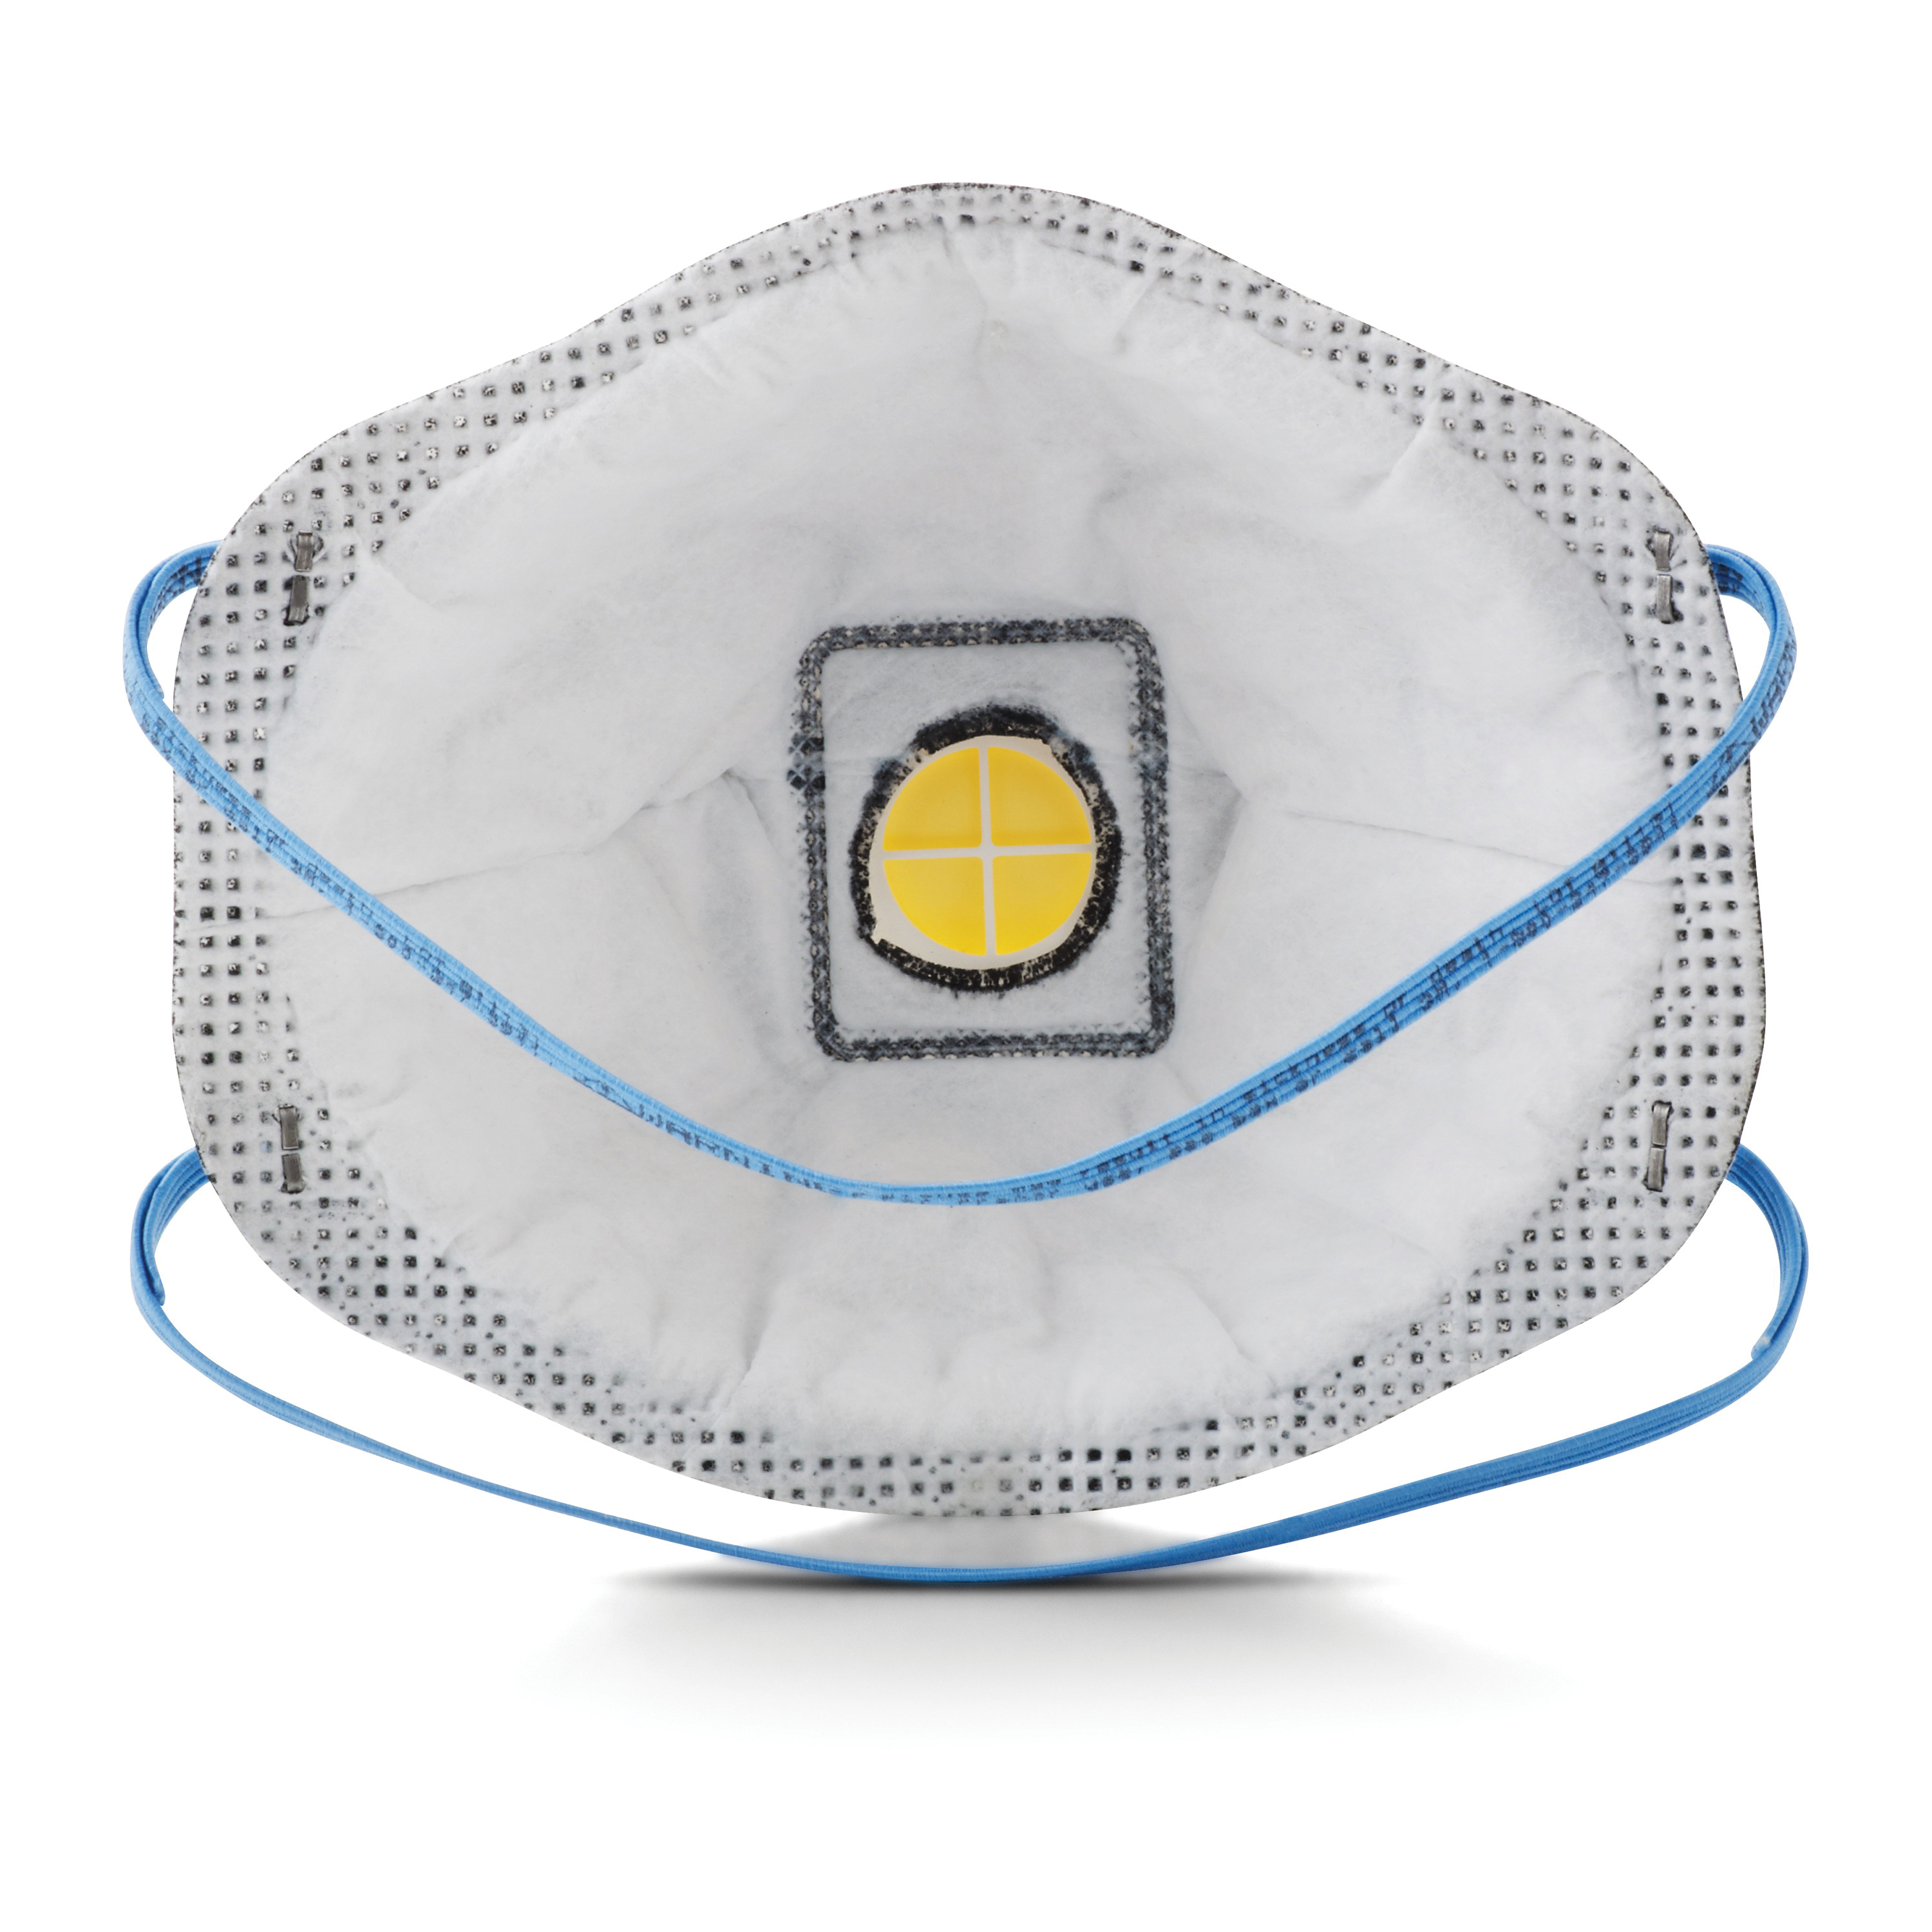 3M™ 051138-54370 8576 Cup Style Disposable Particulate Respirator With Cool Flow™ Exhalation Valve and Adjustable M-Nose Clip, Standard, Resists: Certain Oil and Non-Oil Based Particles